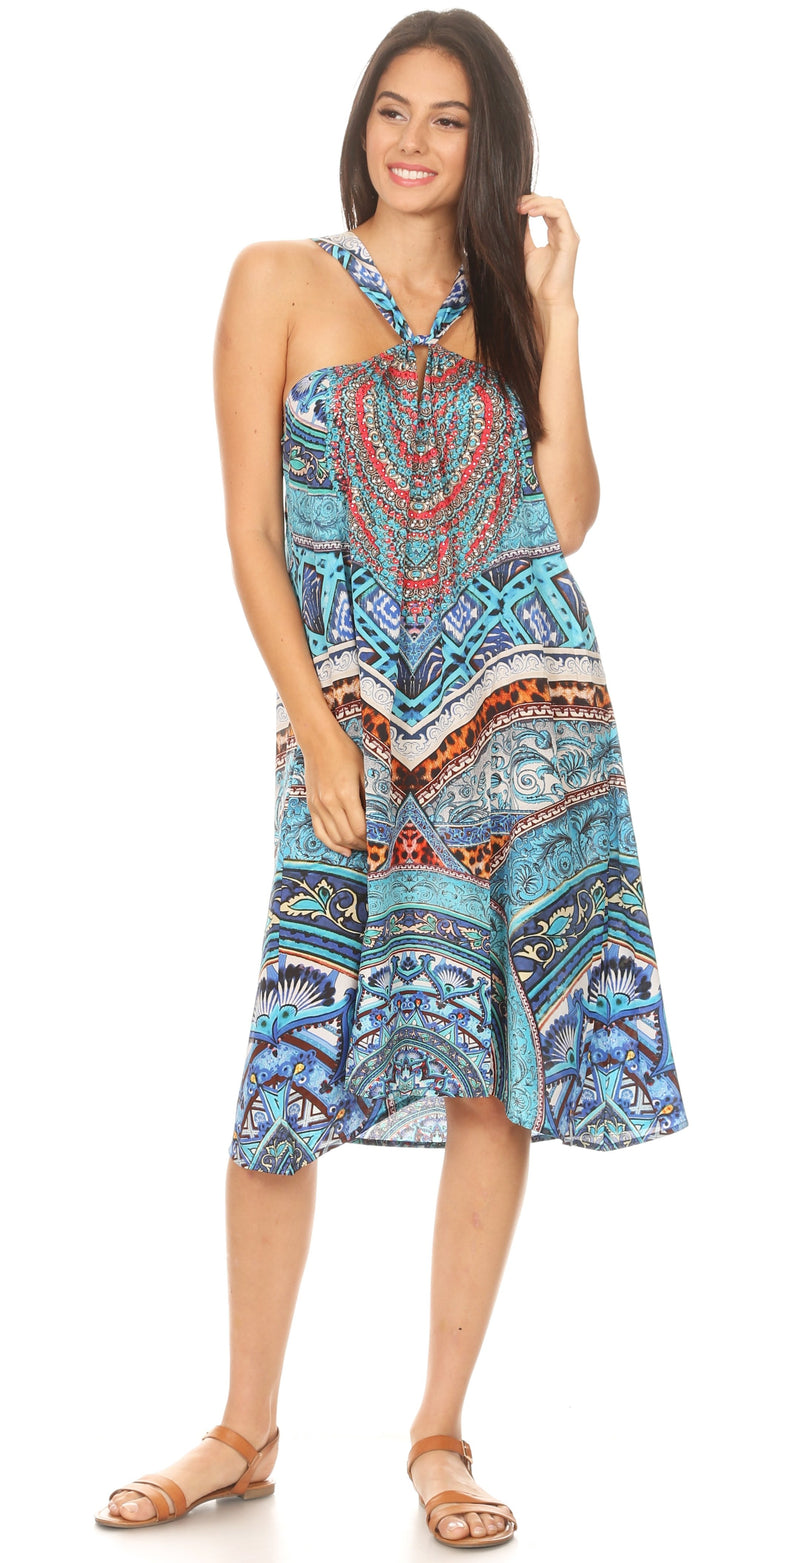 group-TTU296-Turq (Sakkas Eva Women's Casual Summer Cocktail Boho Sleeveless Short Dress with Print)